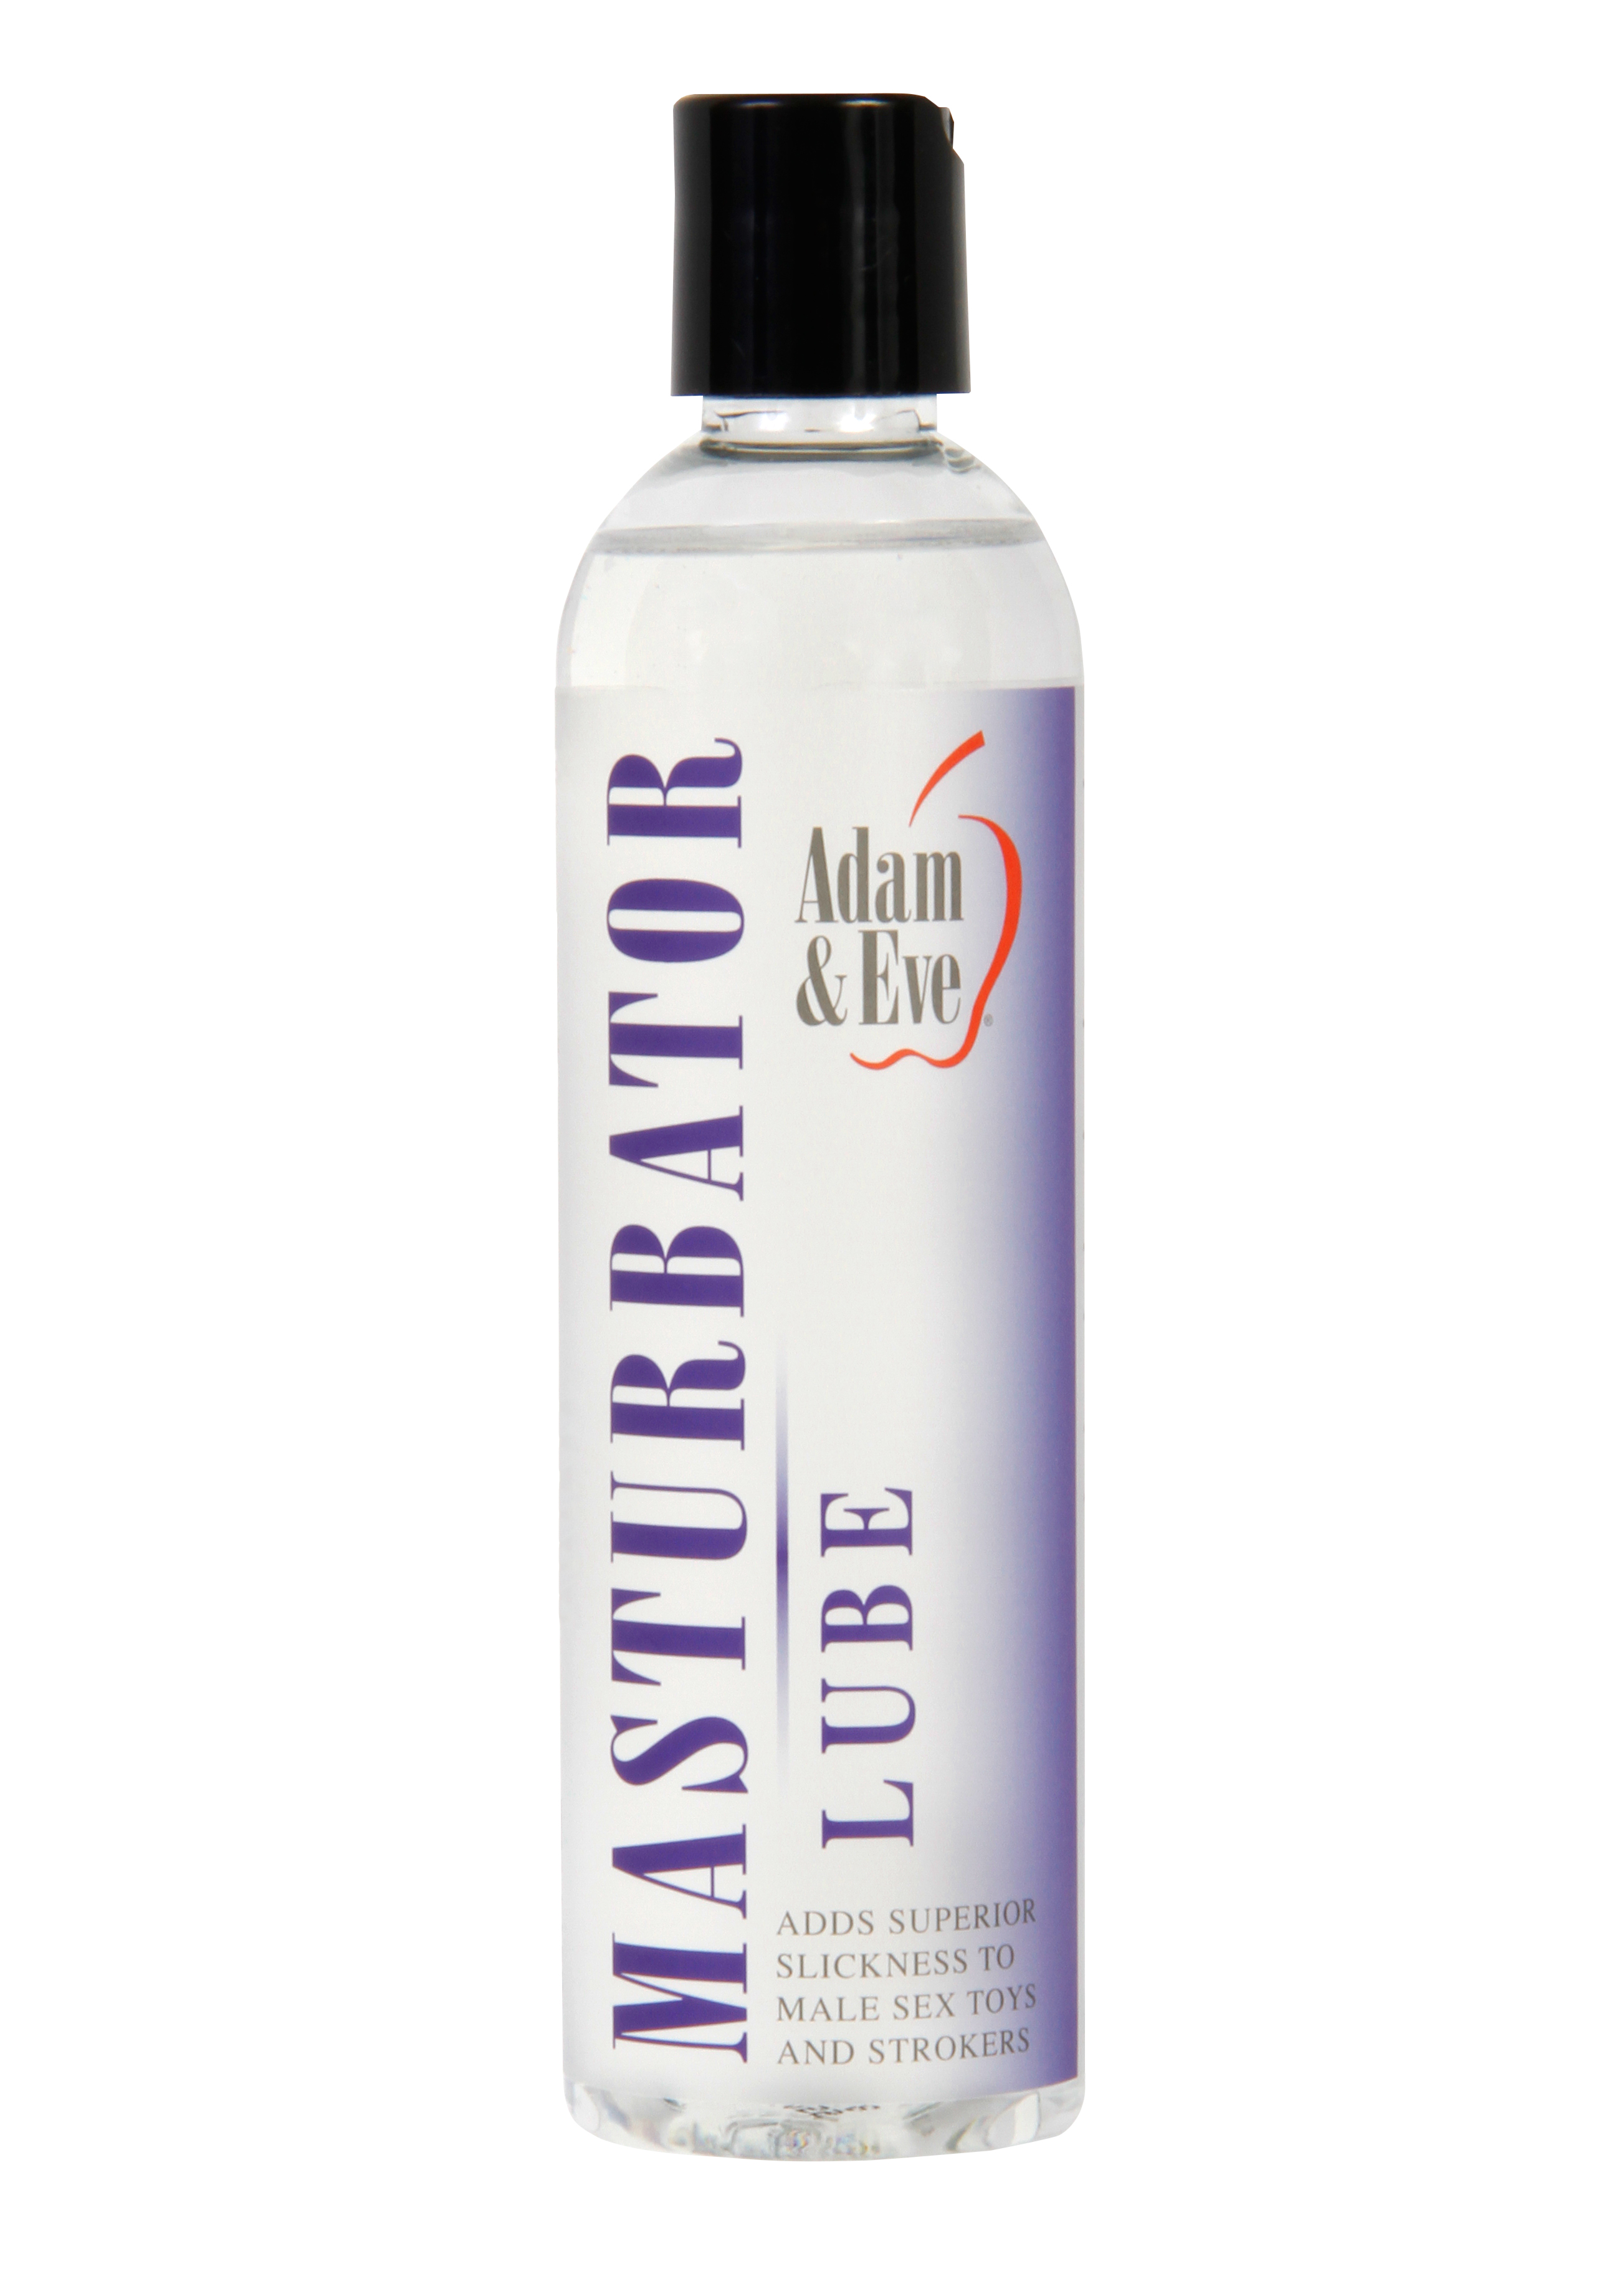 ADAM & EVE MASTURBATOR LUBE 8OZ.